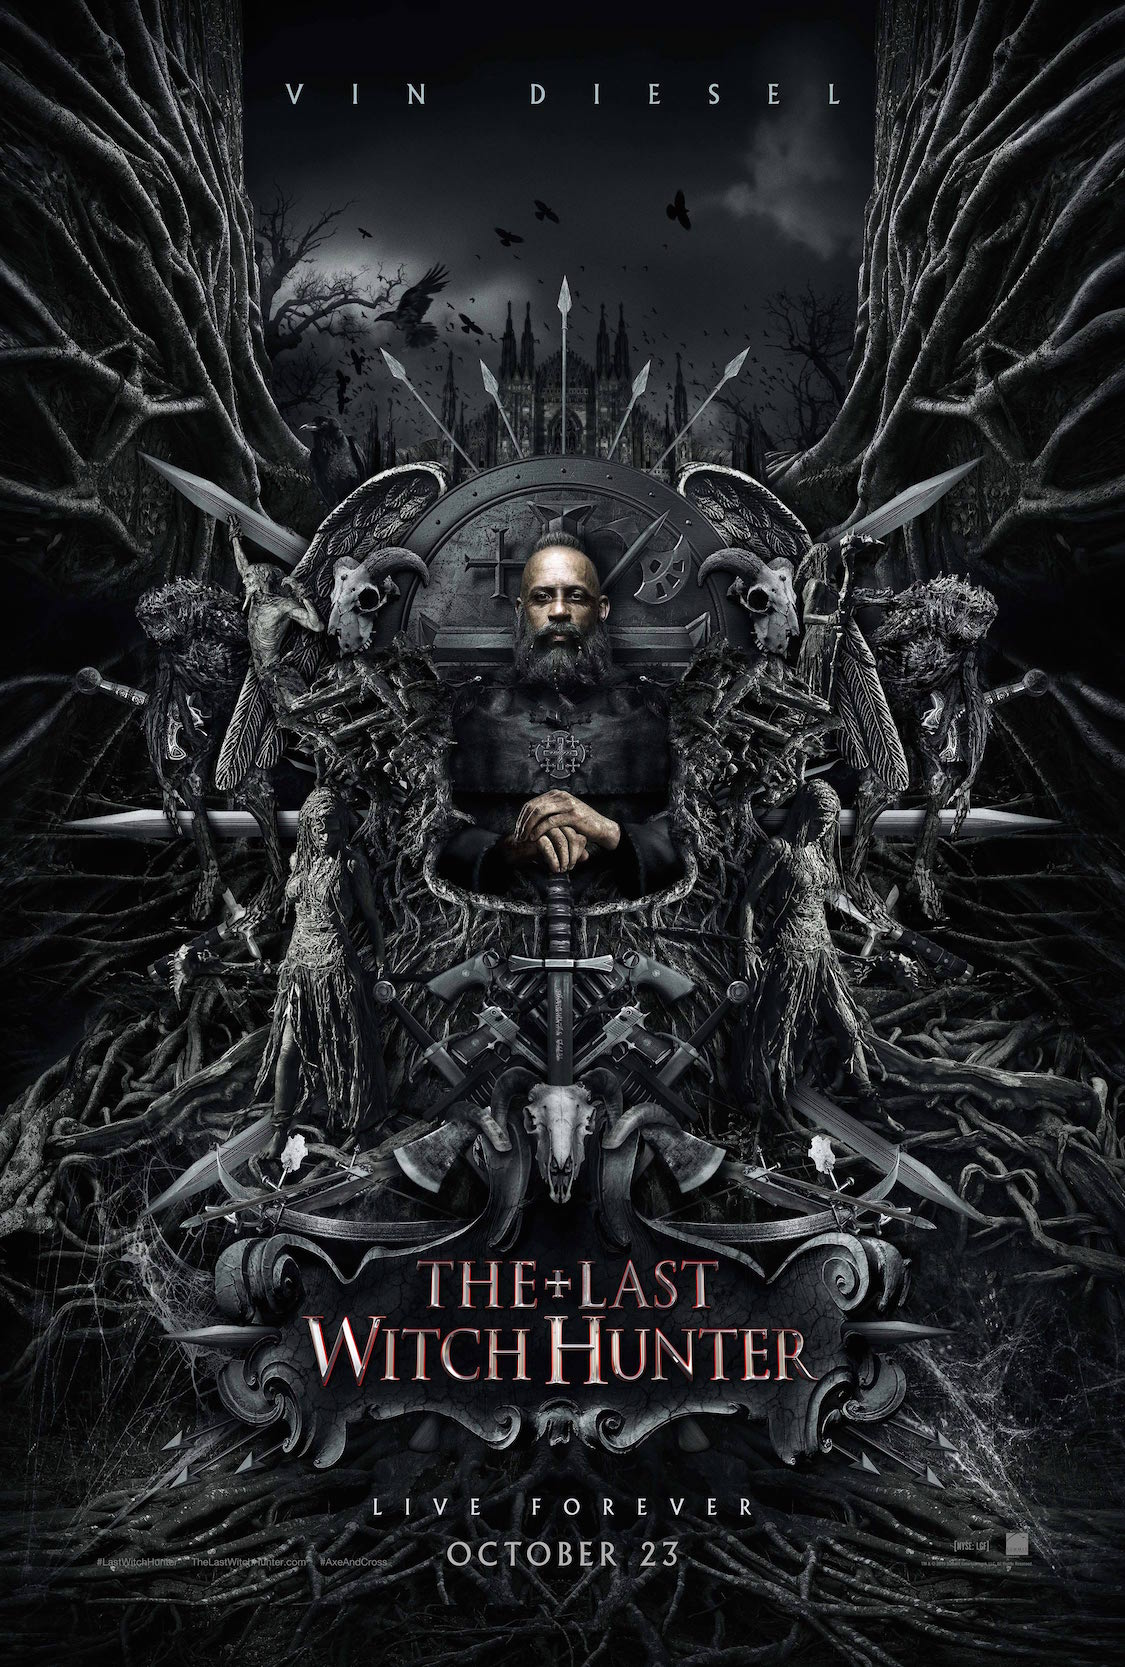 last_witch_hunter_poster_2015_01.jpg